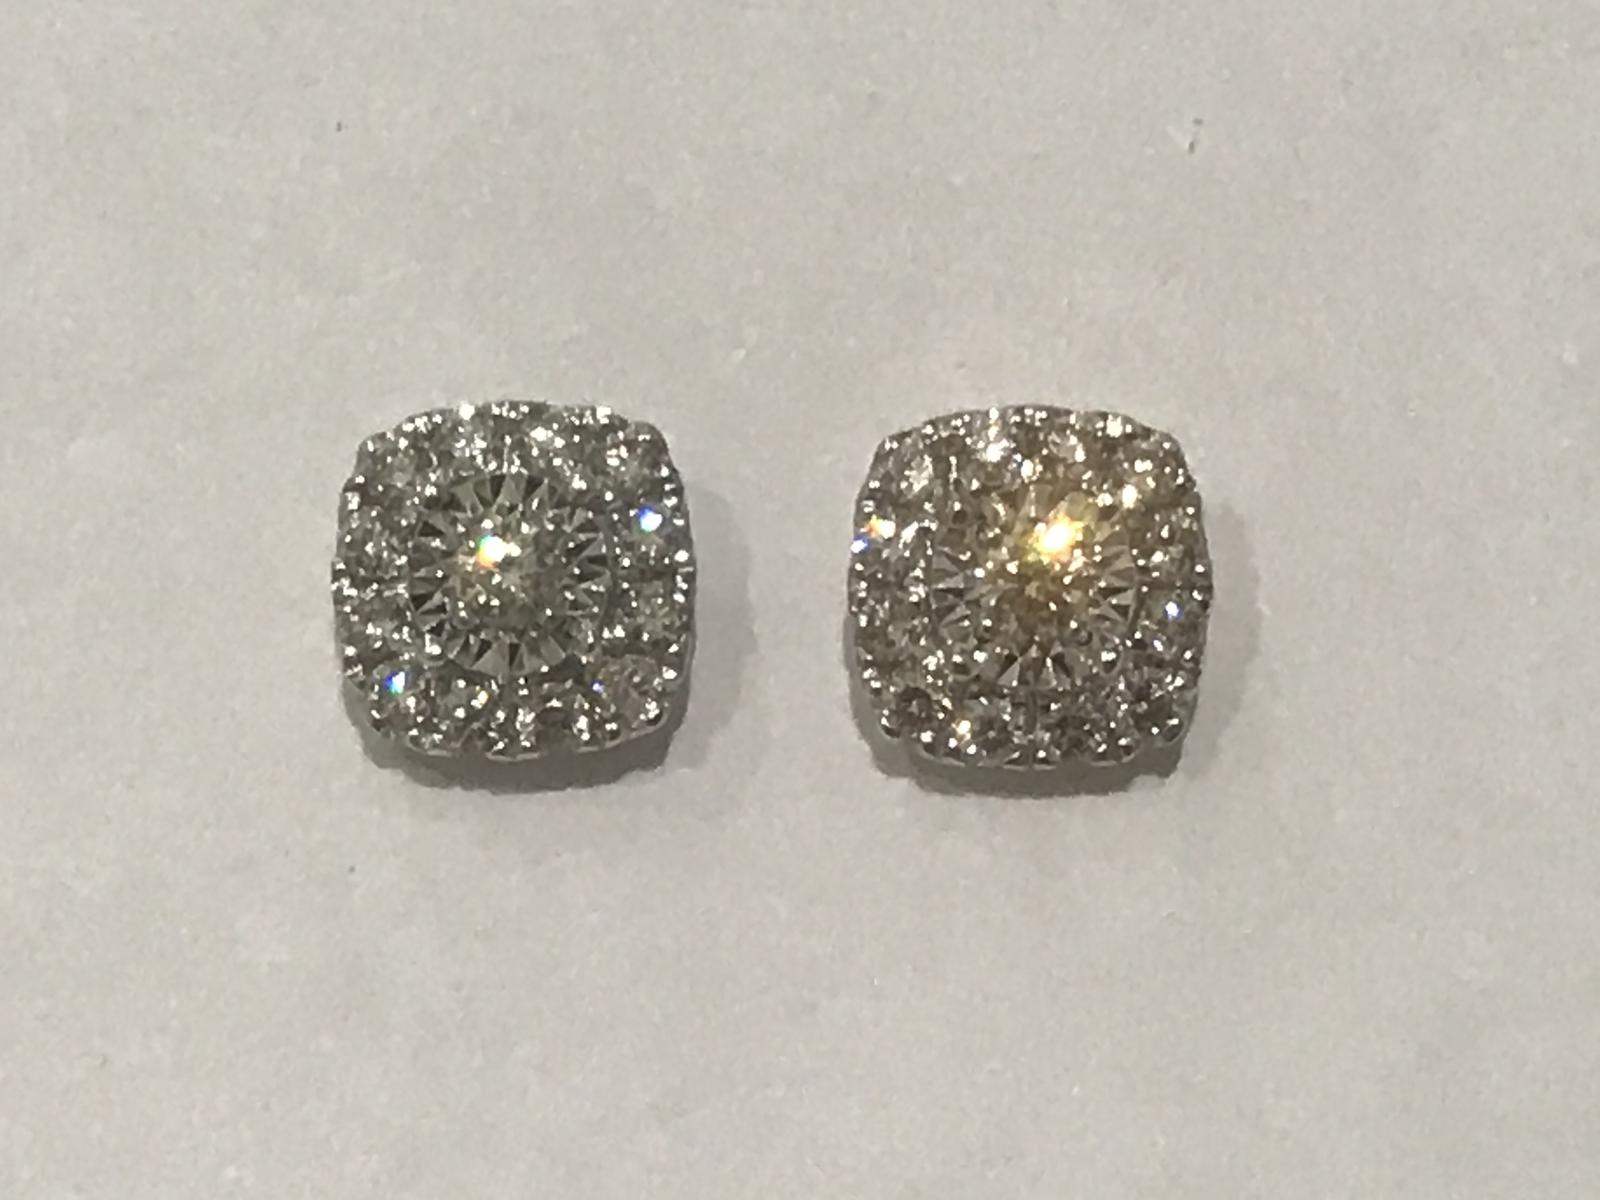 Certified Western Australian Diamond studs at a fraction of retail.